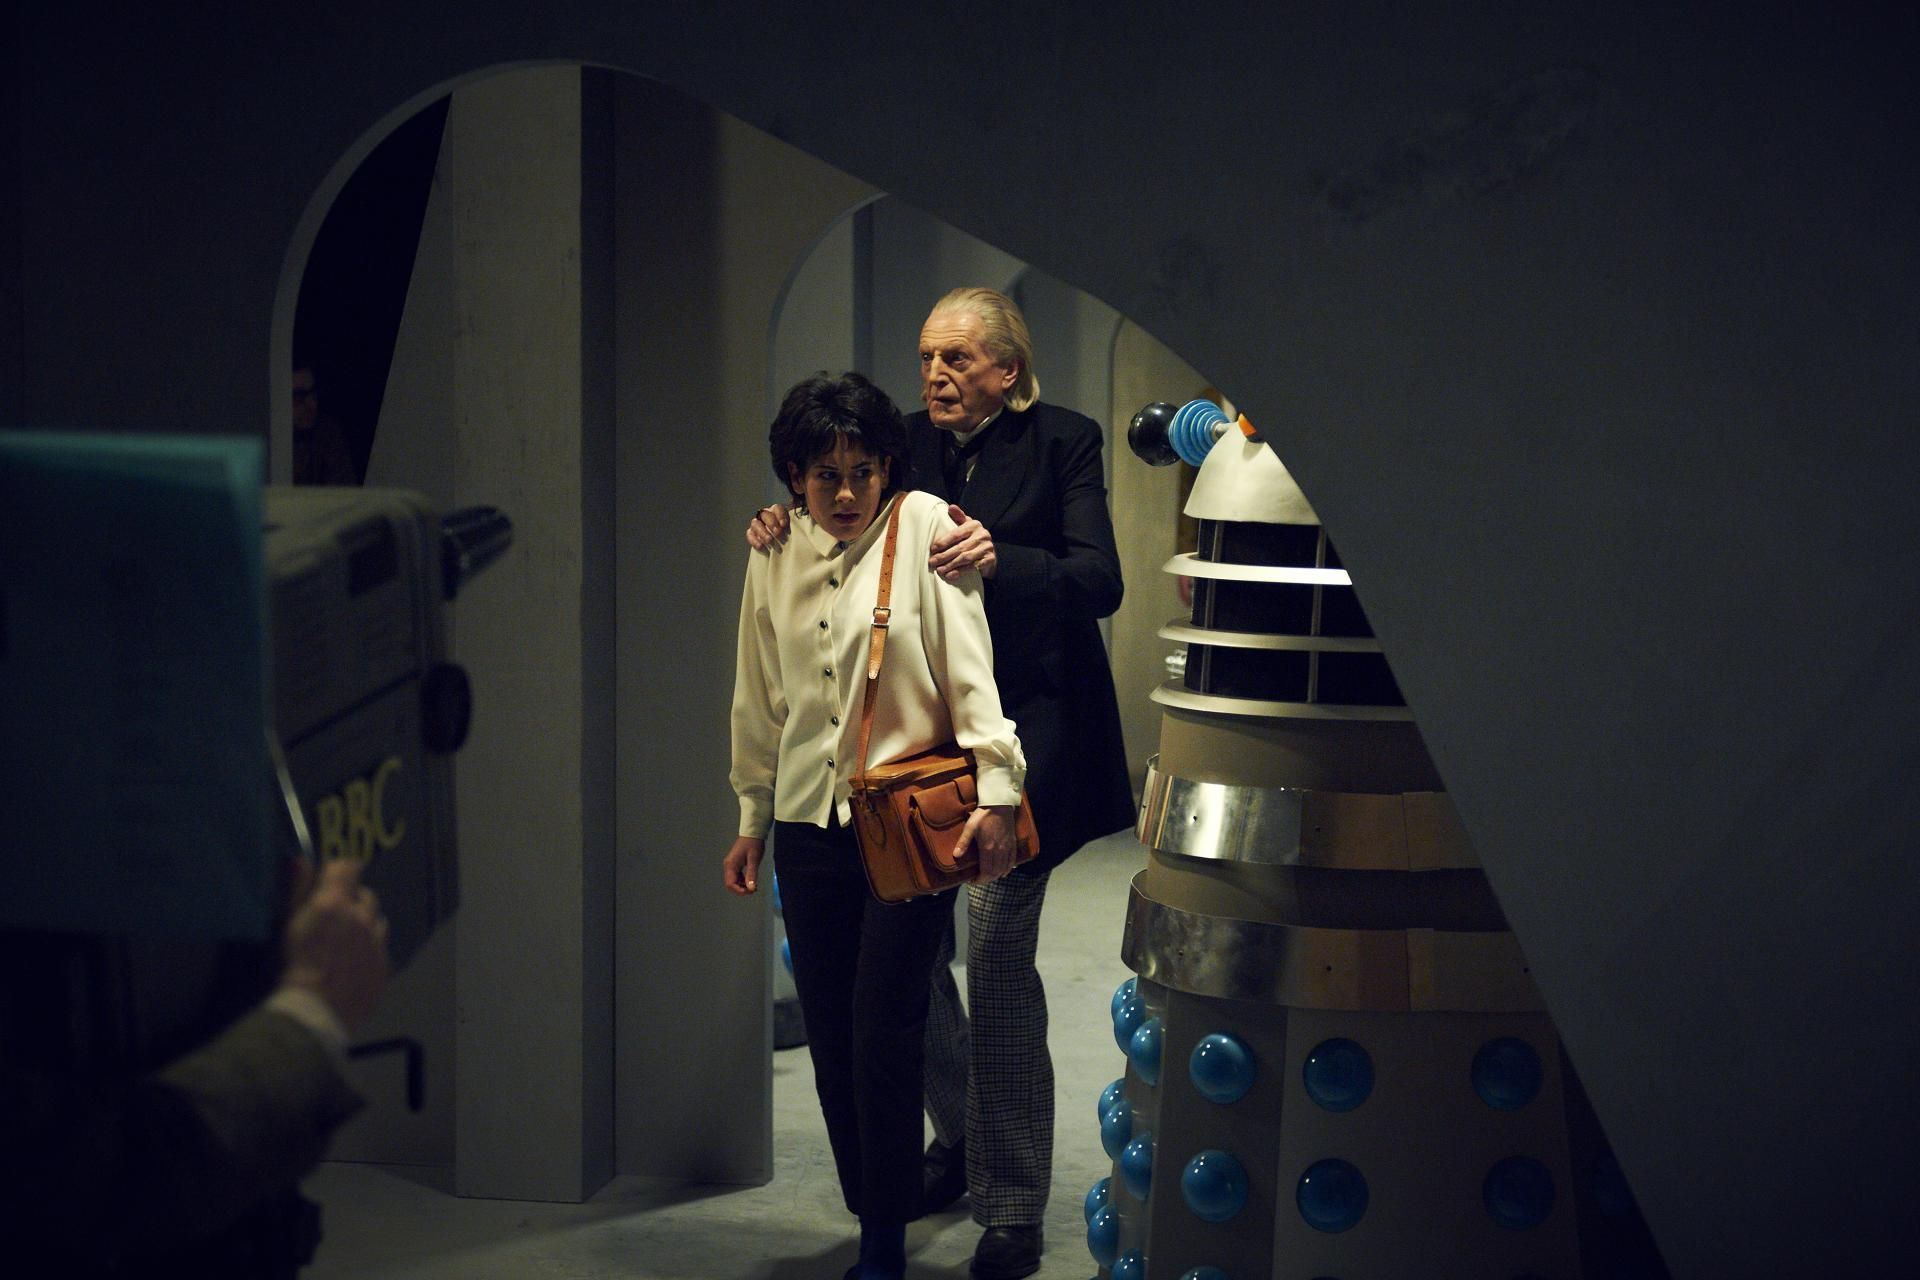 Recreating an iconic scene with Daleks